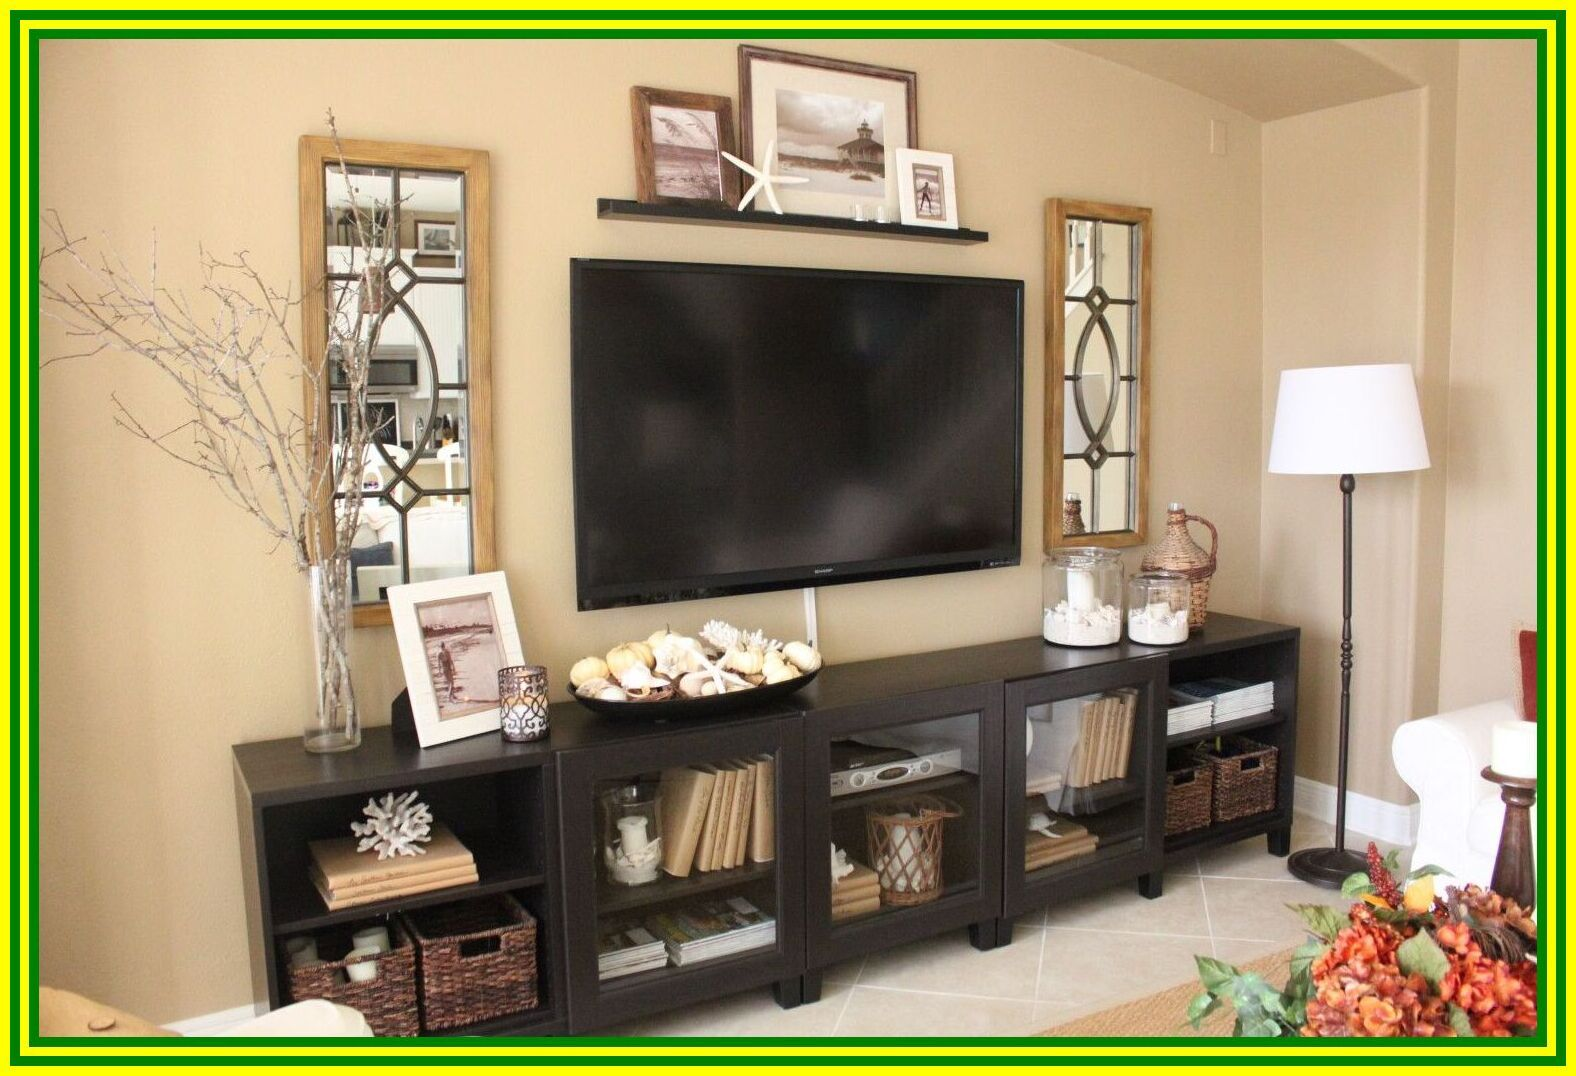 87 Reference Of Living Room Decorating Ideas With Big Screen Tv In 2020 Living Room Tv Stand Living Room Without Tv Big Living Rooms